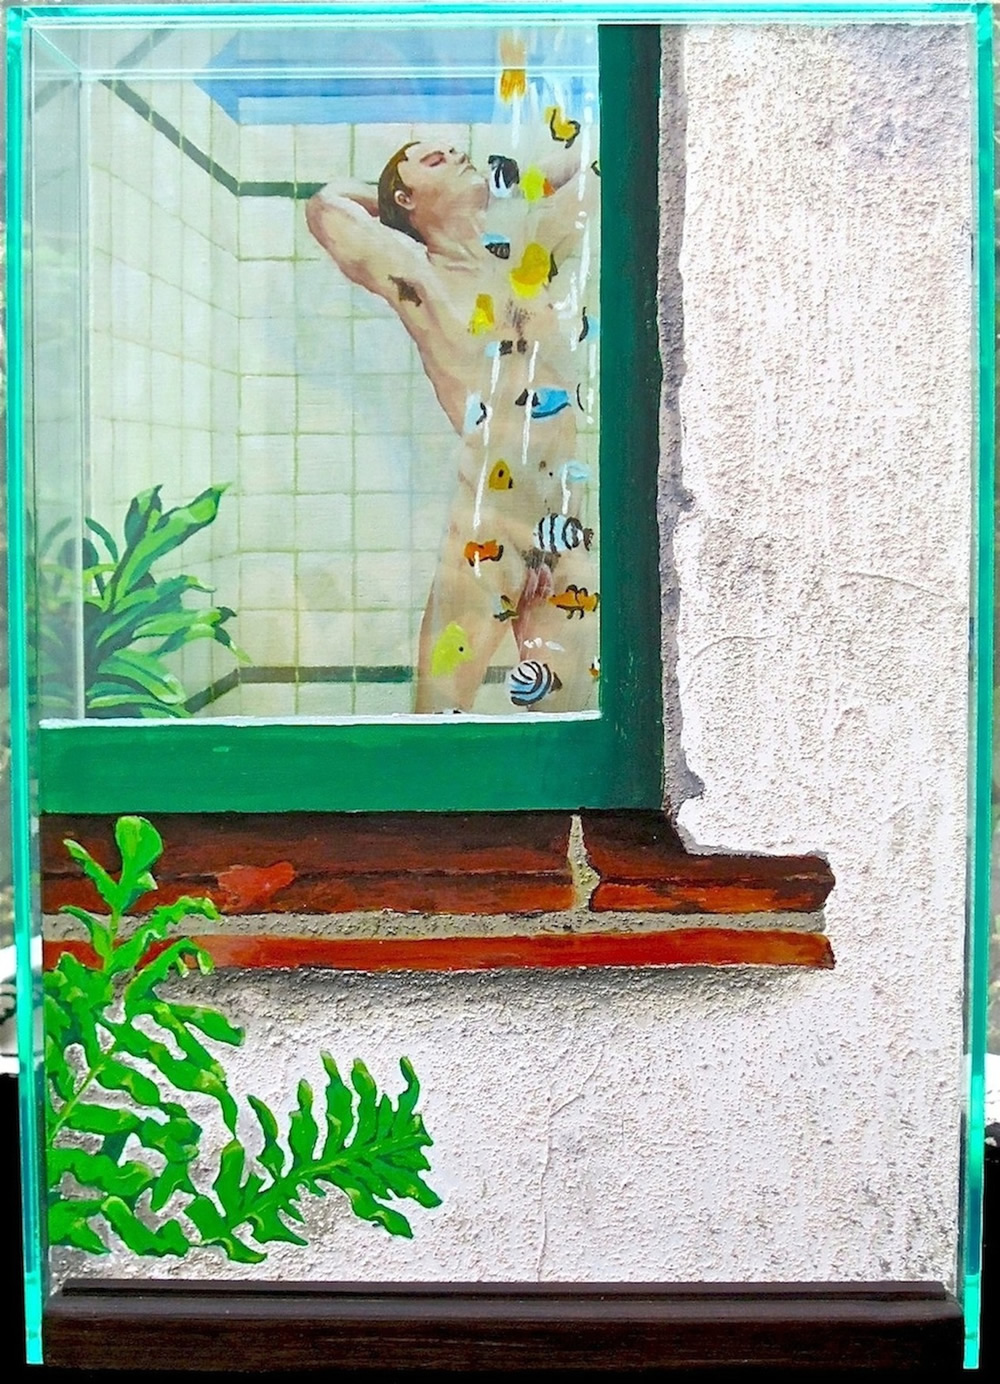 Chrissy Thirlaway, Peeping 7.30am, Triptych view 1, Mixed media, 31x44x15cm